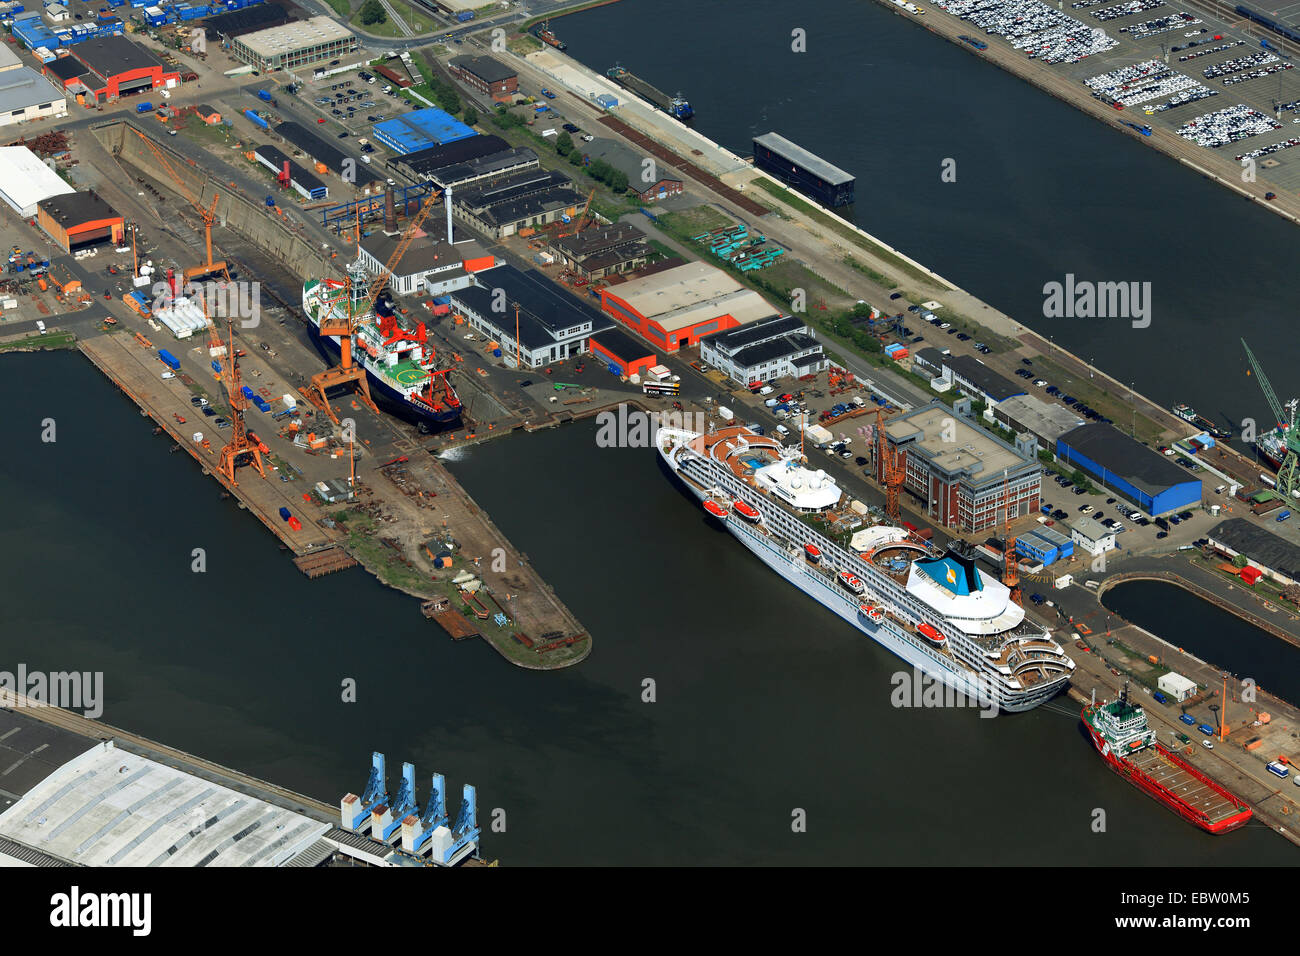 port basins with passenger ship Ariana and research ship Polarstern at dry-dock, Germany, Bremerhaven - Stock Image